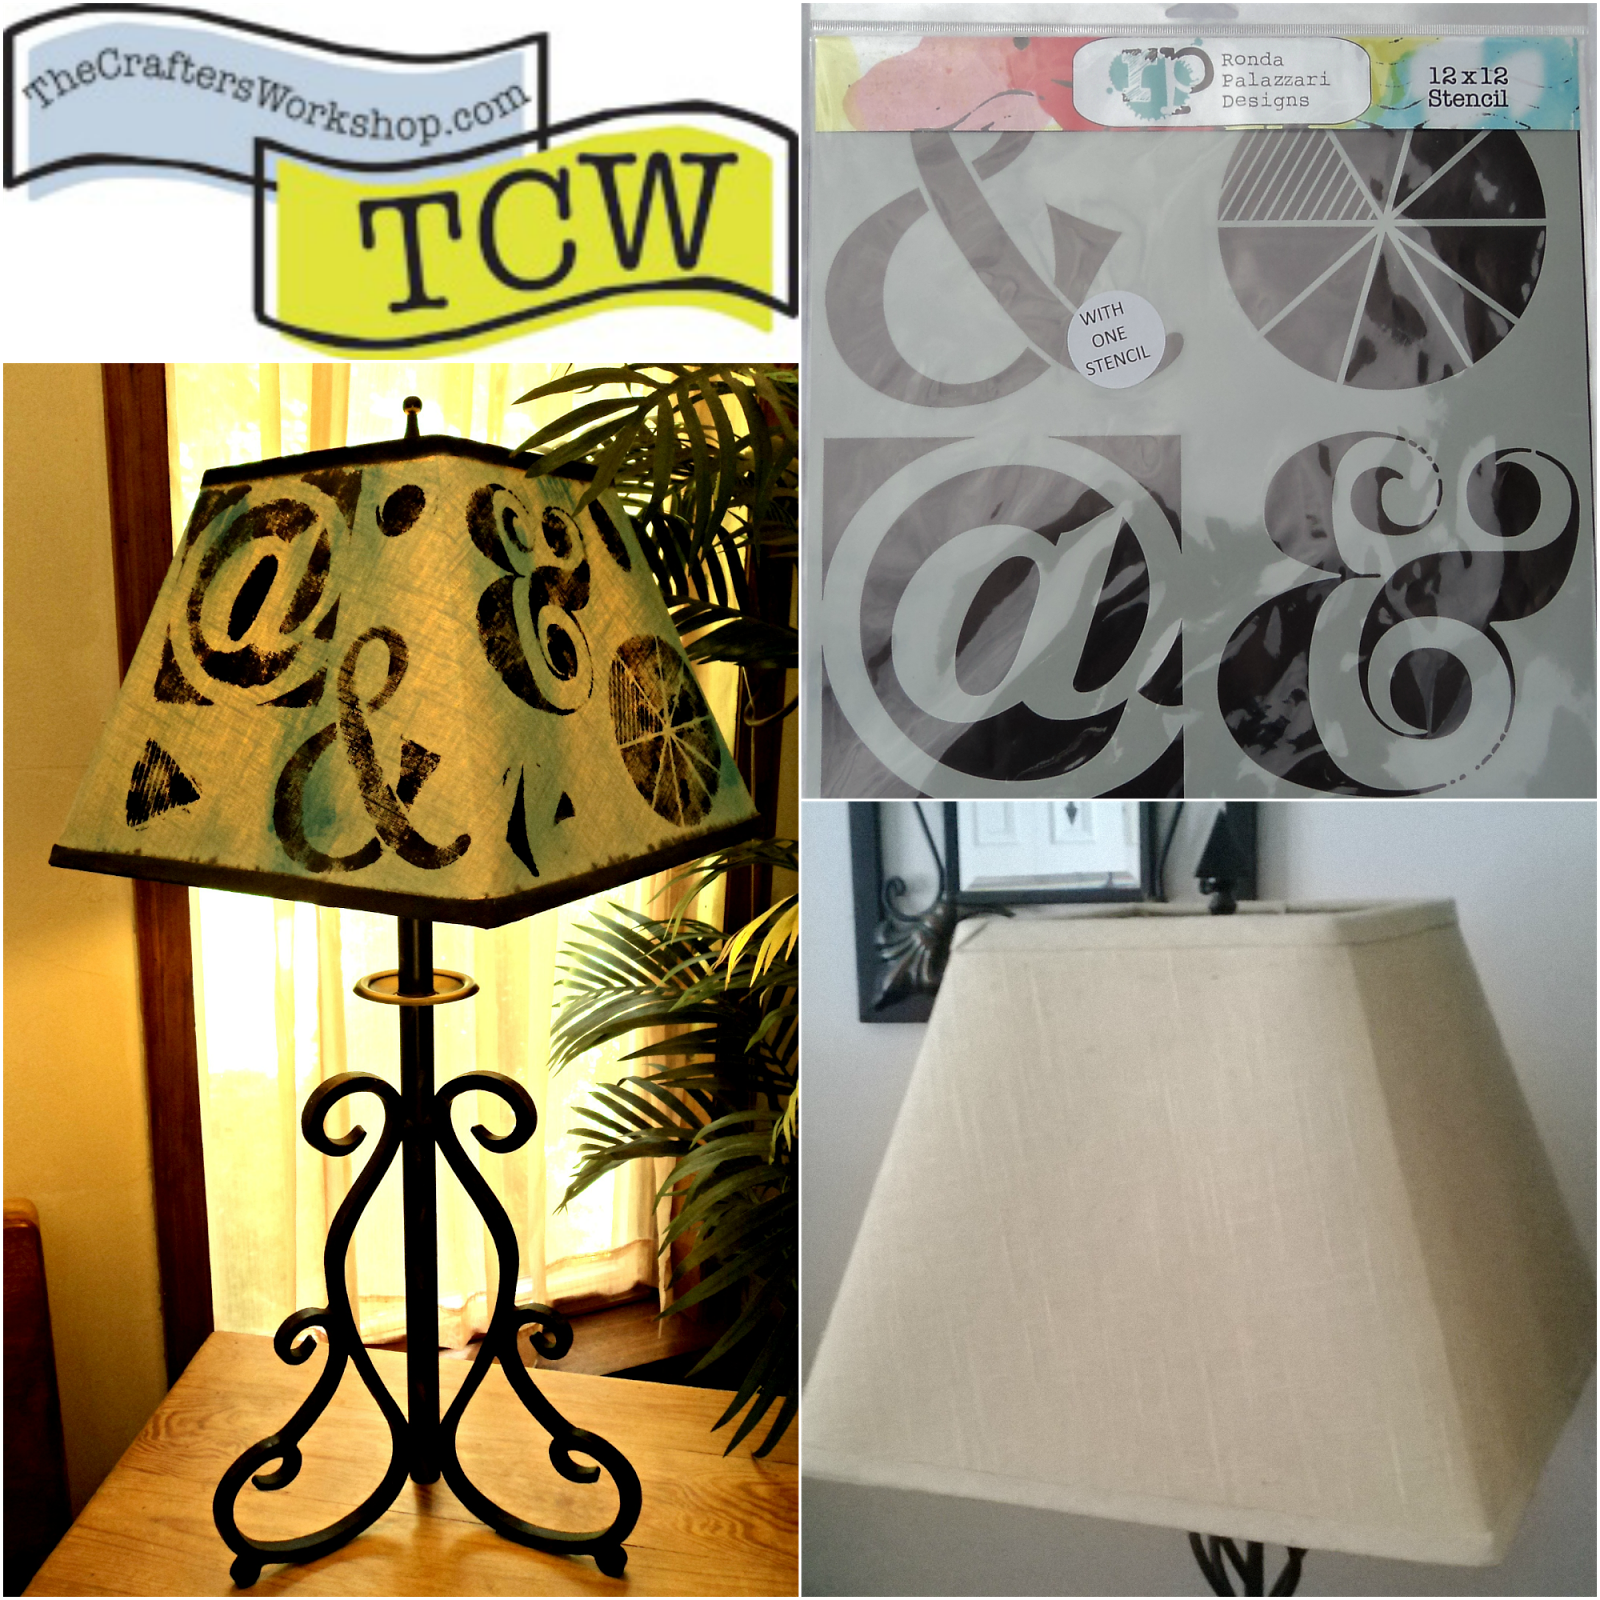 Painted lamp shade for tcw 1 stencil 4 ways series redo it painted lamp shade for tcw 1 stencil 4 ways series aloadofball Gallery